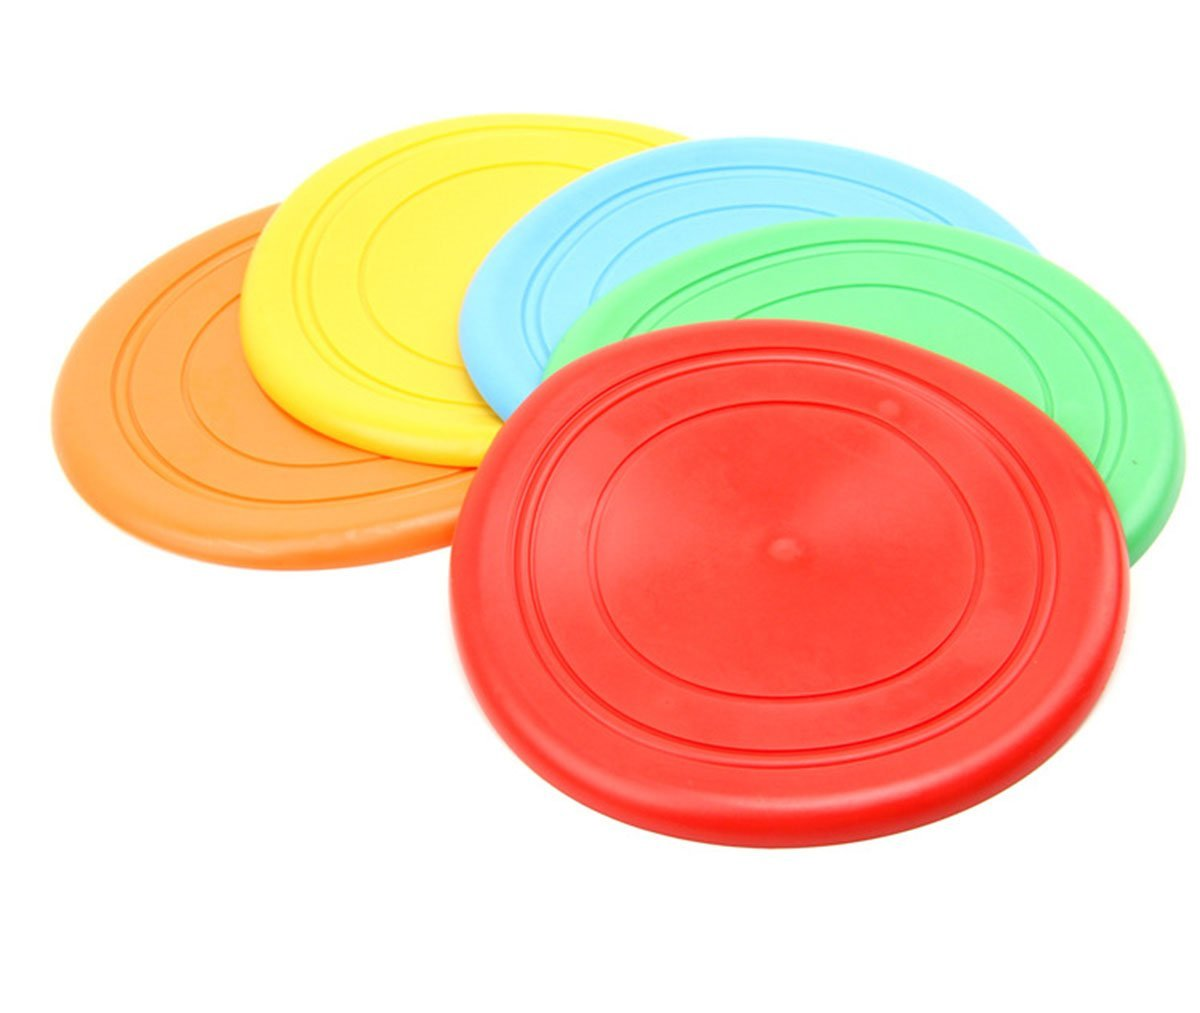 winwin,5pcs Dog Training Fetch Toy Soft Rubber Flyer Frisbee Disc Pets Soft Silicone Tooth Resistant Toy Outdoor Fun